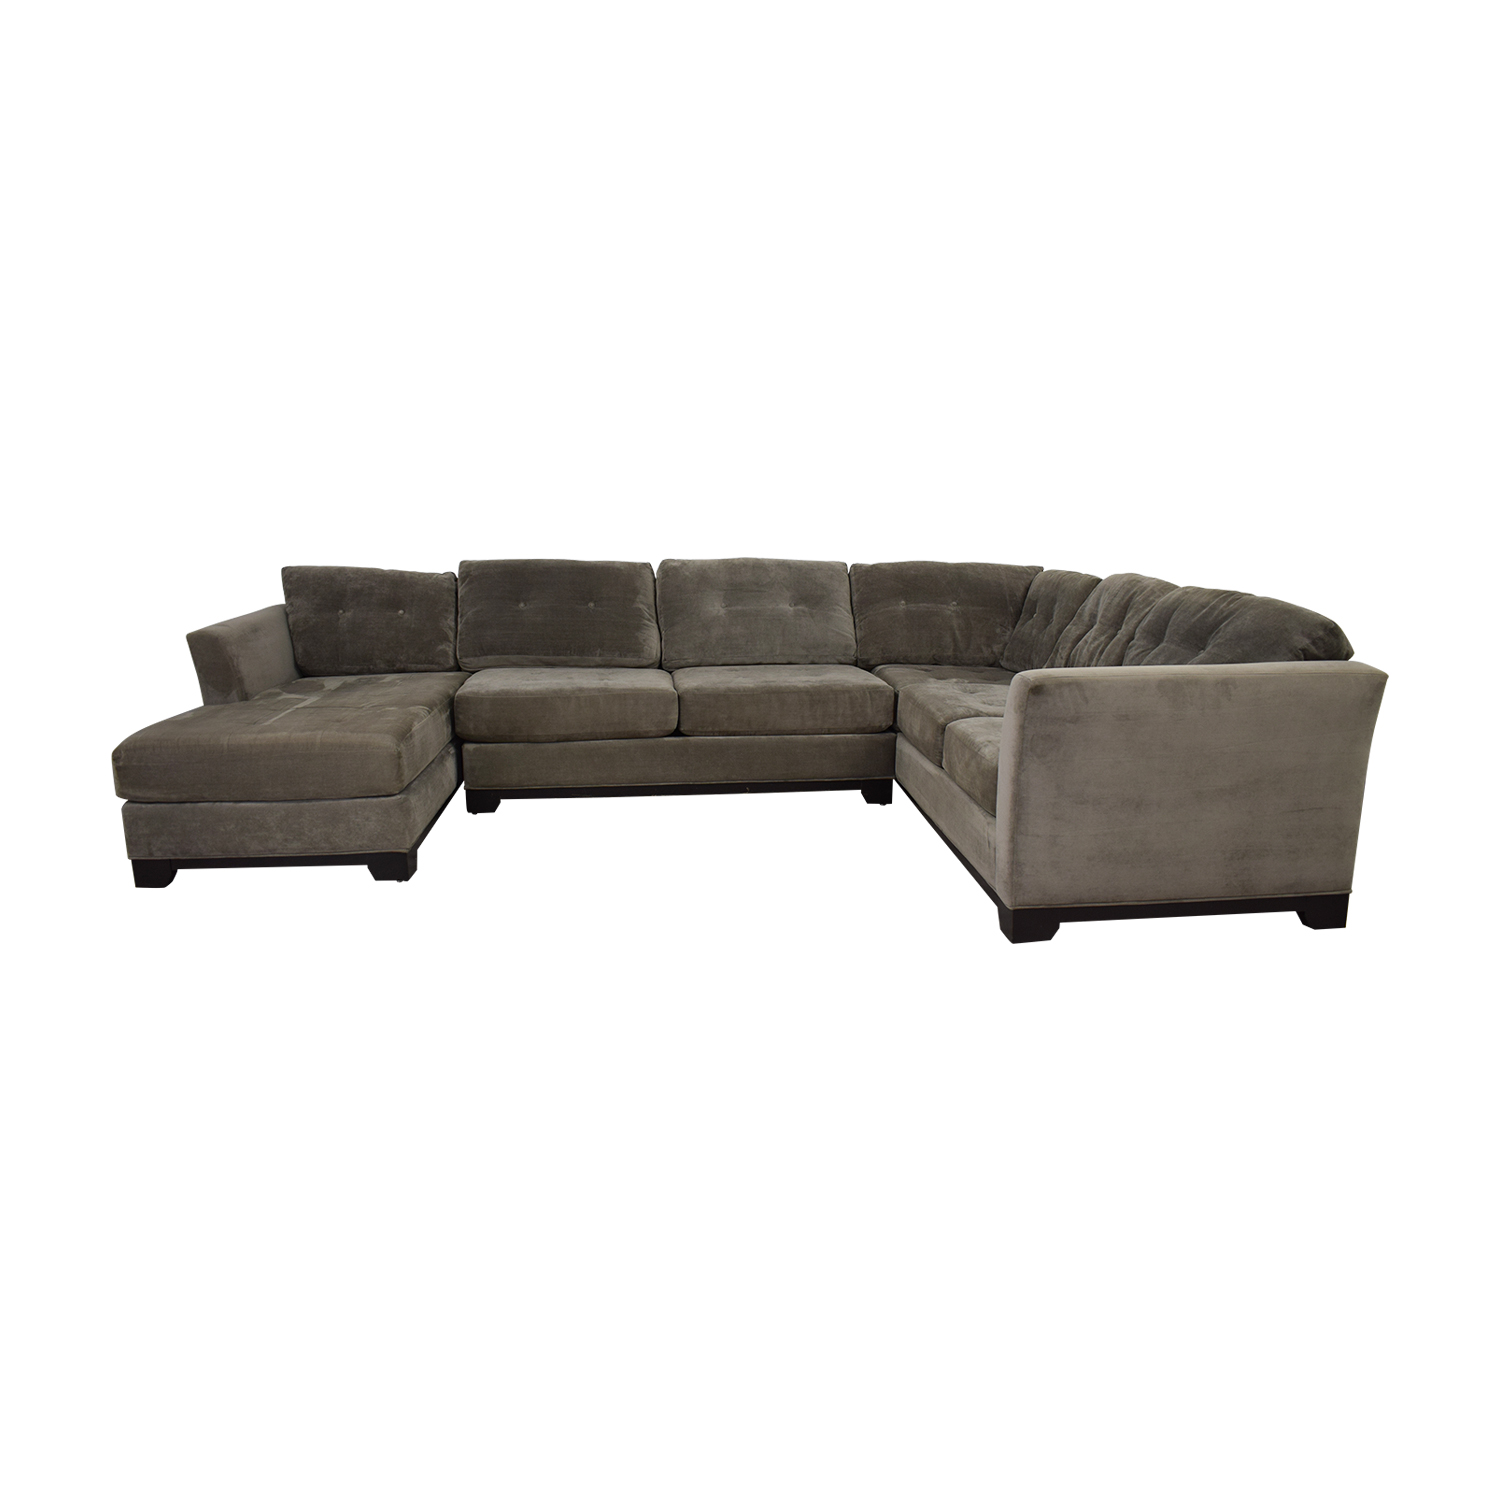 buy Jonathan Lewis Elliot Grey Tufted Microfiber Chaise U-Shaped Sectional Jonathan Lewis